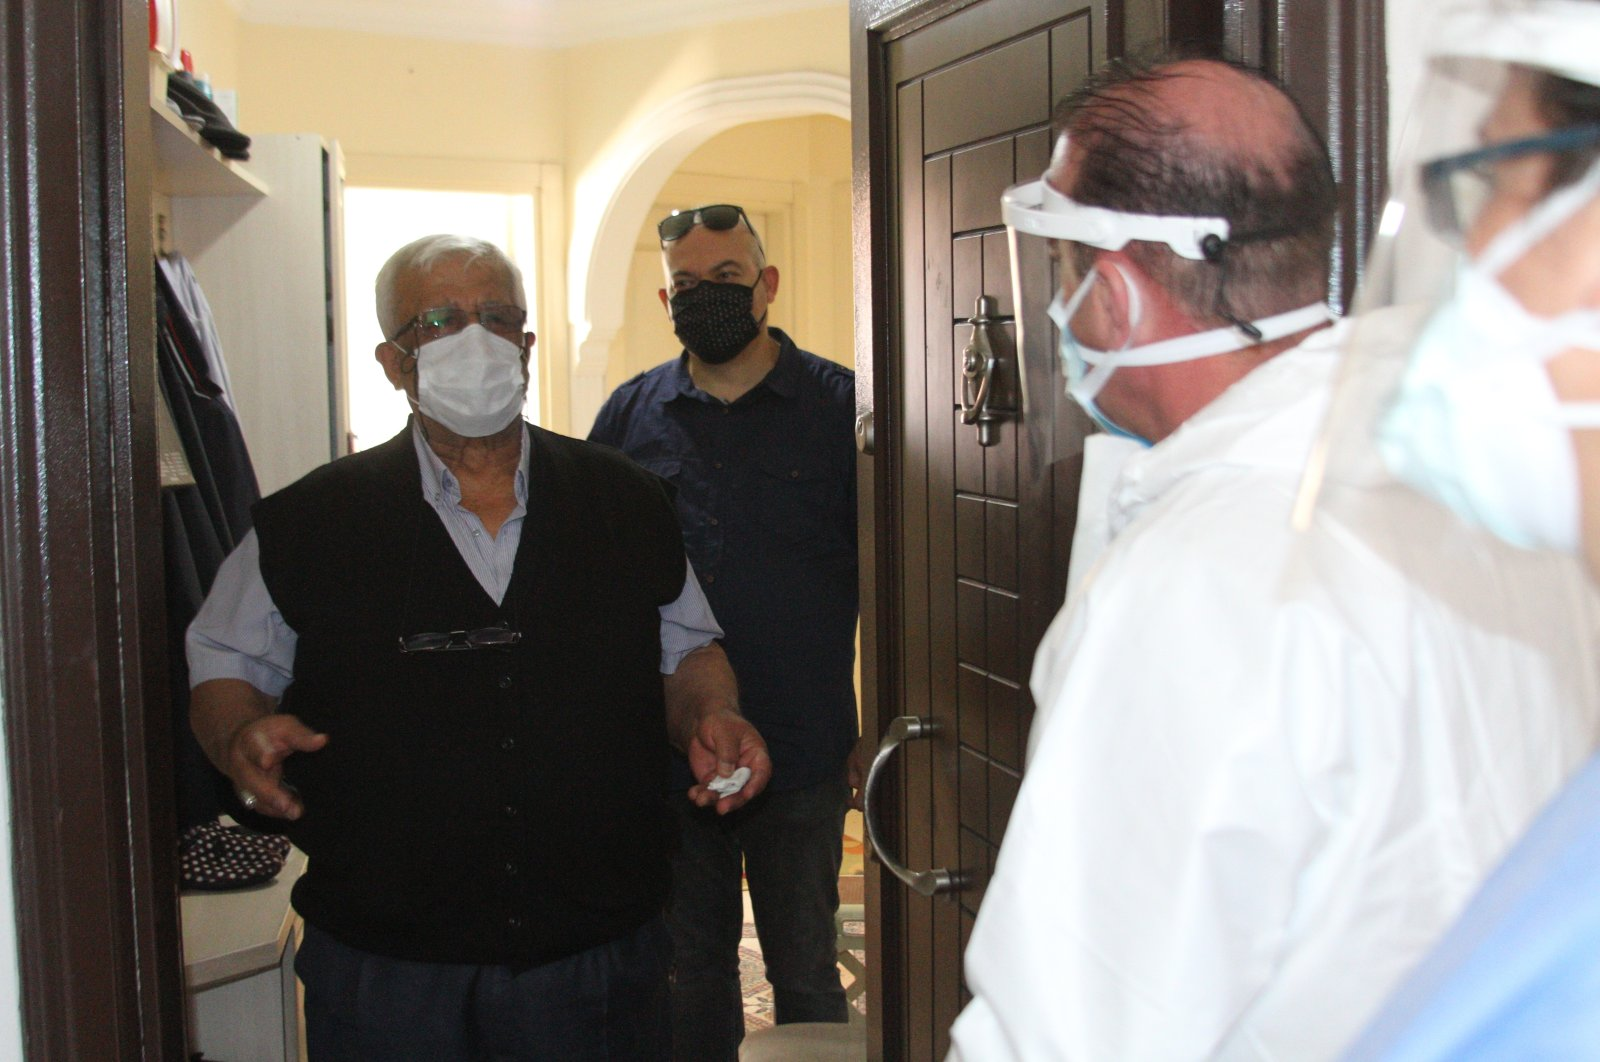 """The """"persuasion"""" crew talks to Şaban Ertekin who at first refused to get his jab, in Antalya, southern Turkey, April 22, 2021. (İHA PHOTO)"""